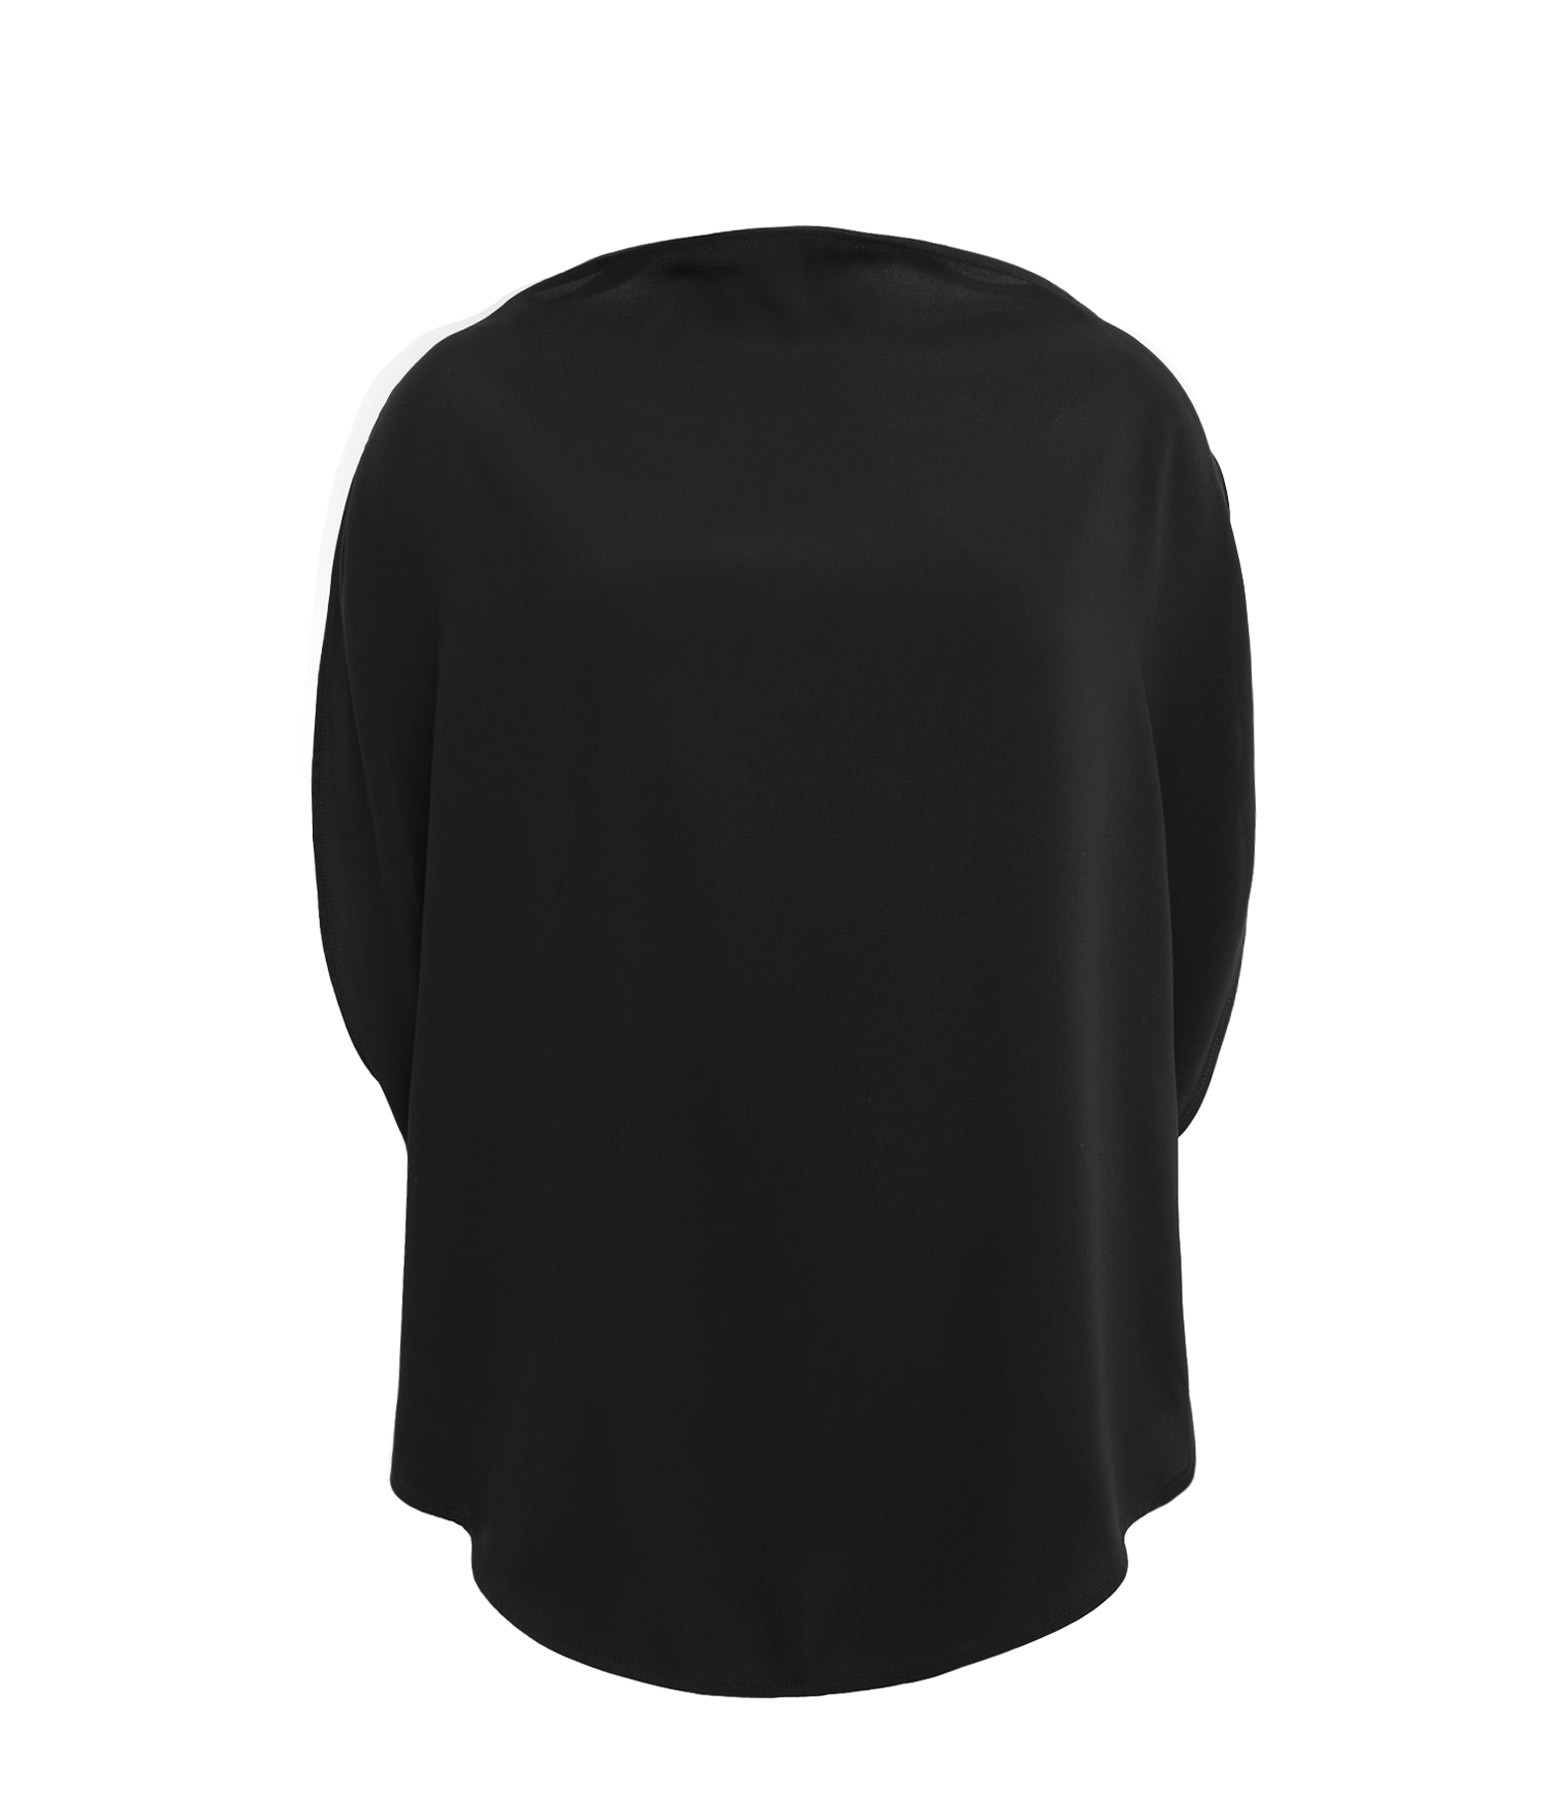 MM6 MAISON MARGIELA - Top Rond Noir